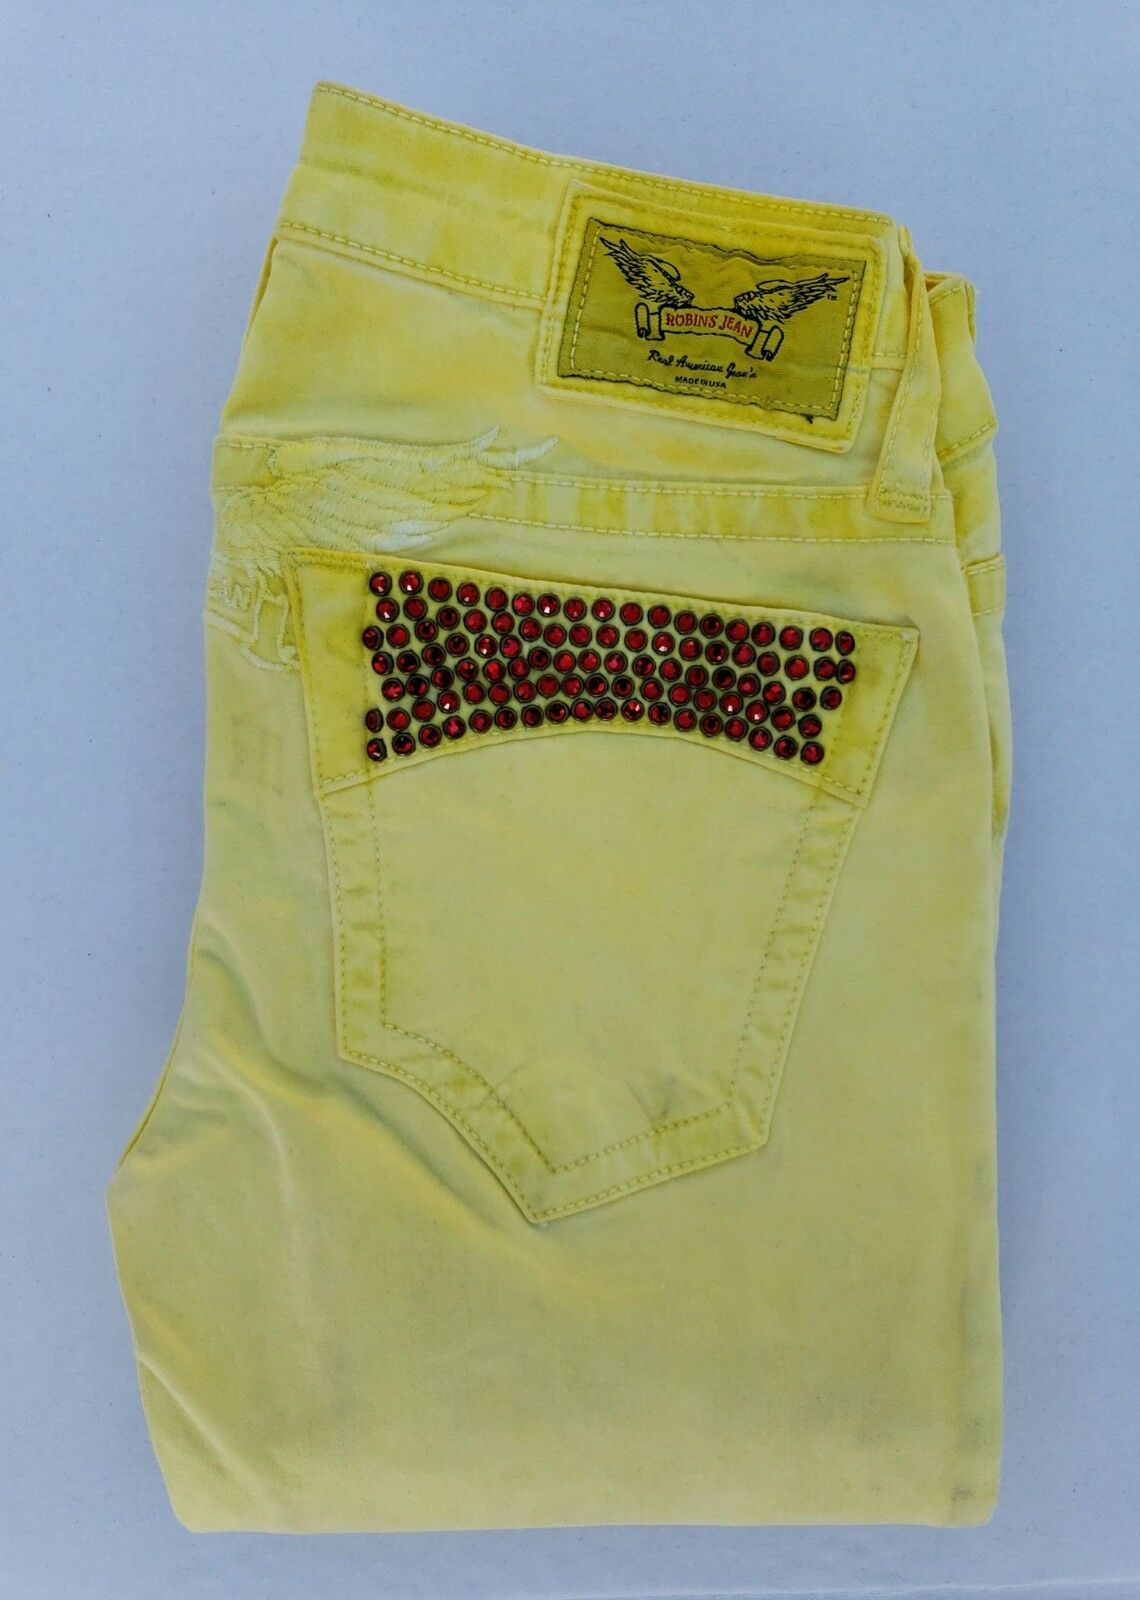 New Women's ROBIN'S JEAN sz 24  SP8857 Super Skinny Jeans with Crystals